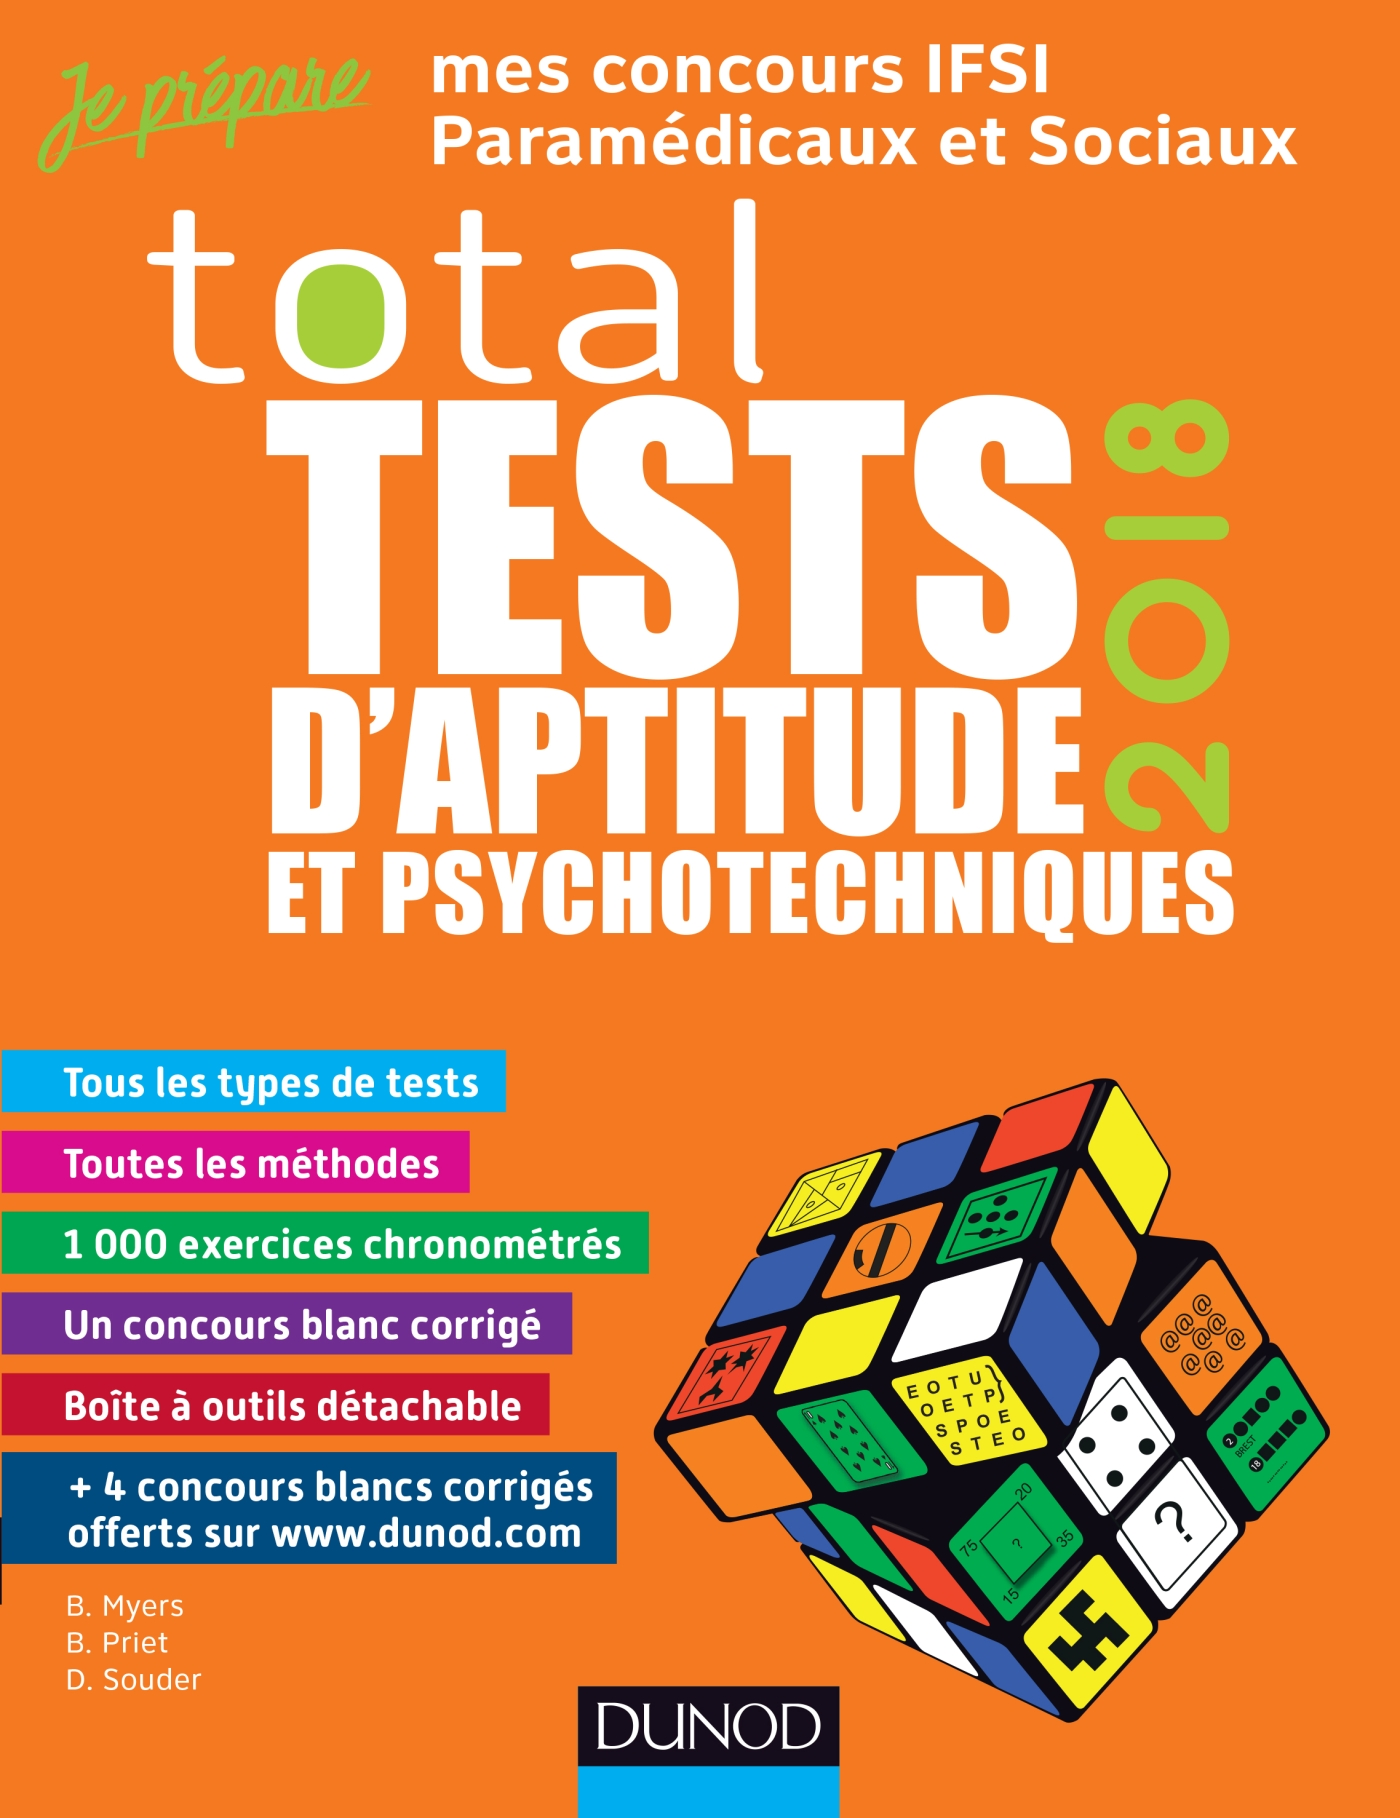 TOTAL Tests d'aptitude et psychotechniques - 2018